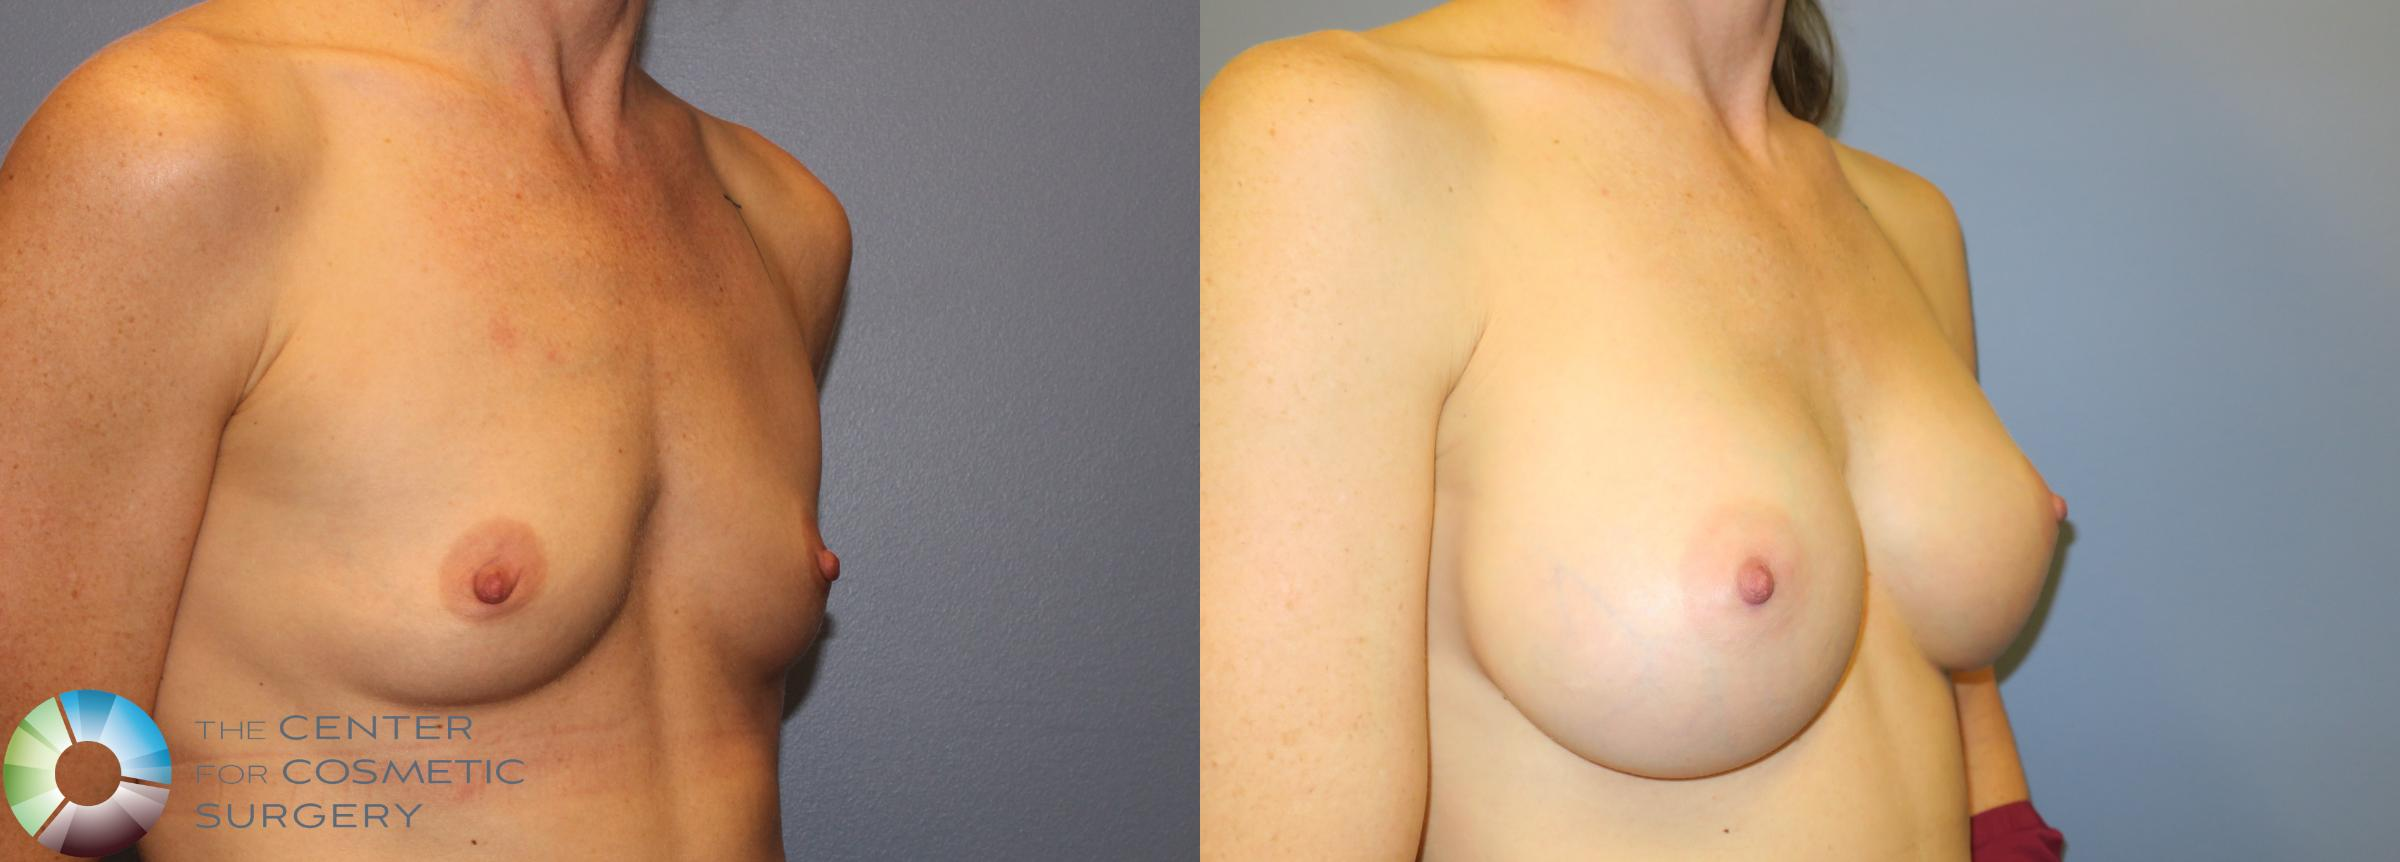 Breast Augmentation Case 909 Before & After View #2 | Golden, CO | The Center for Cosmetic Surgery